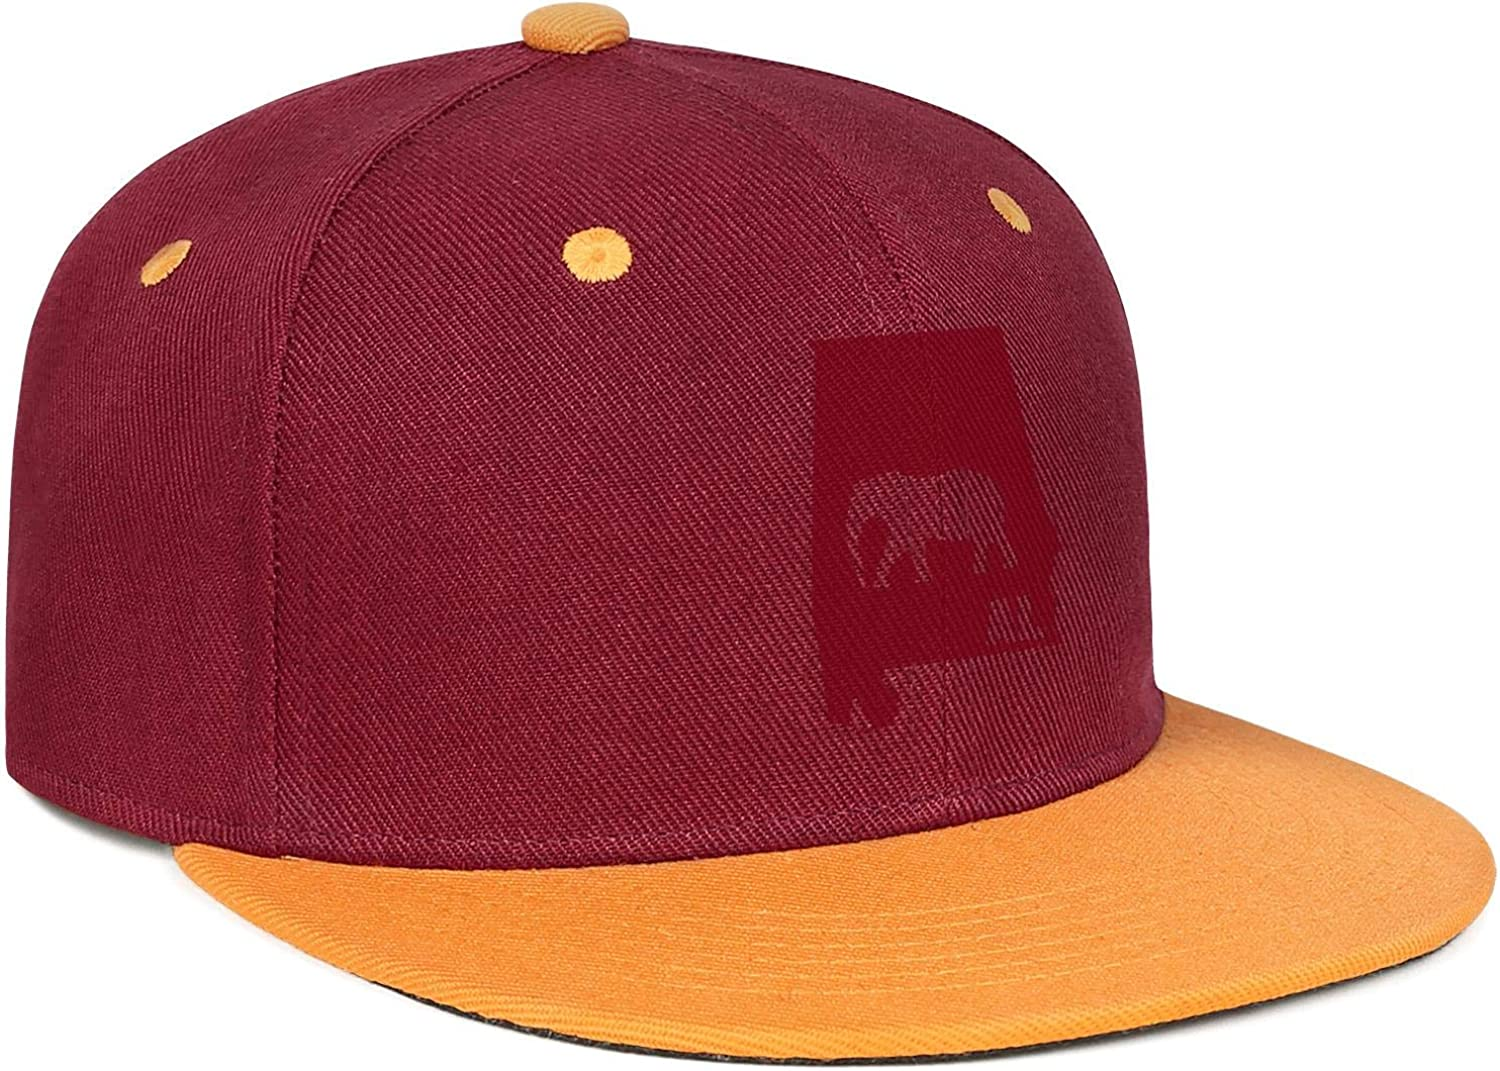 Alabama Al Classic Elephant Mens Womens Dad Hats Fit Snapback Flat Bill Caps